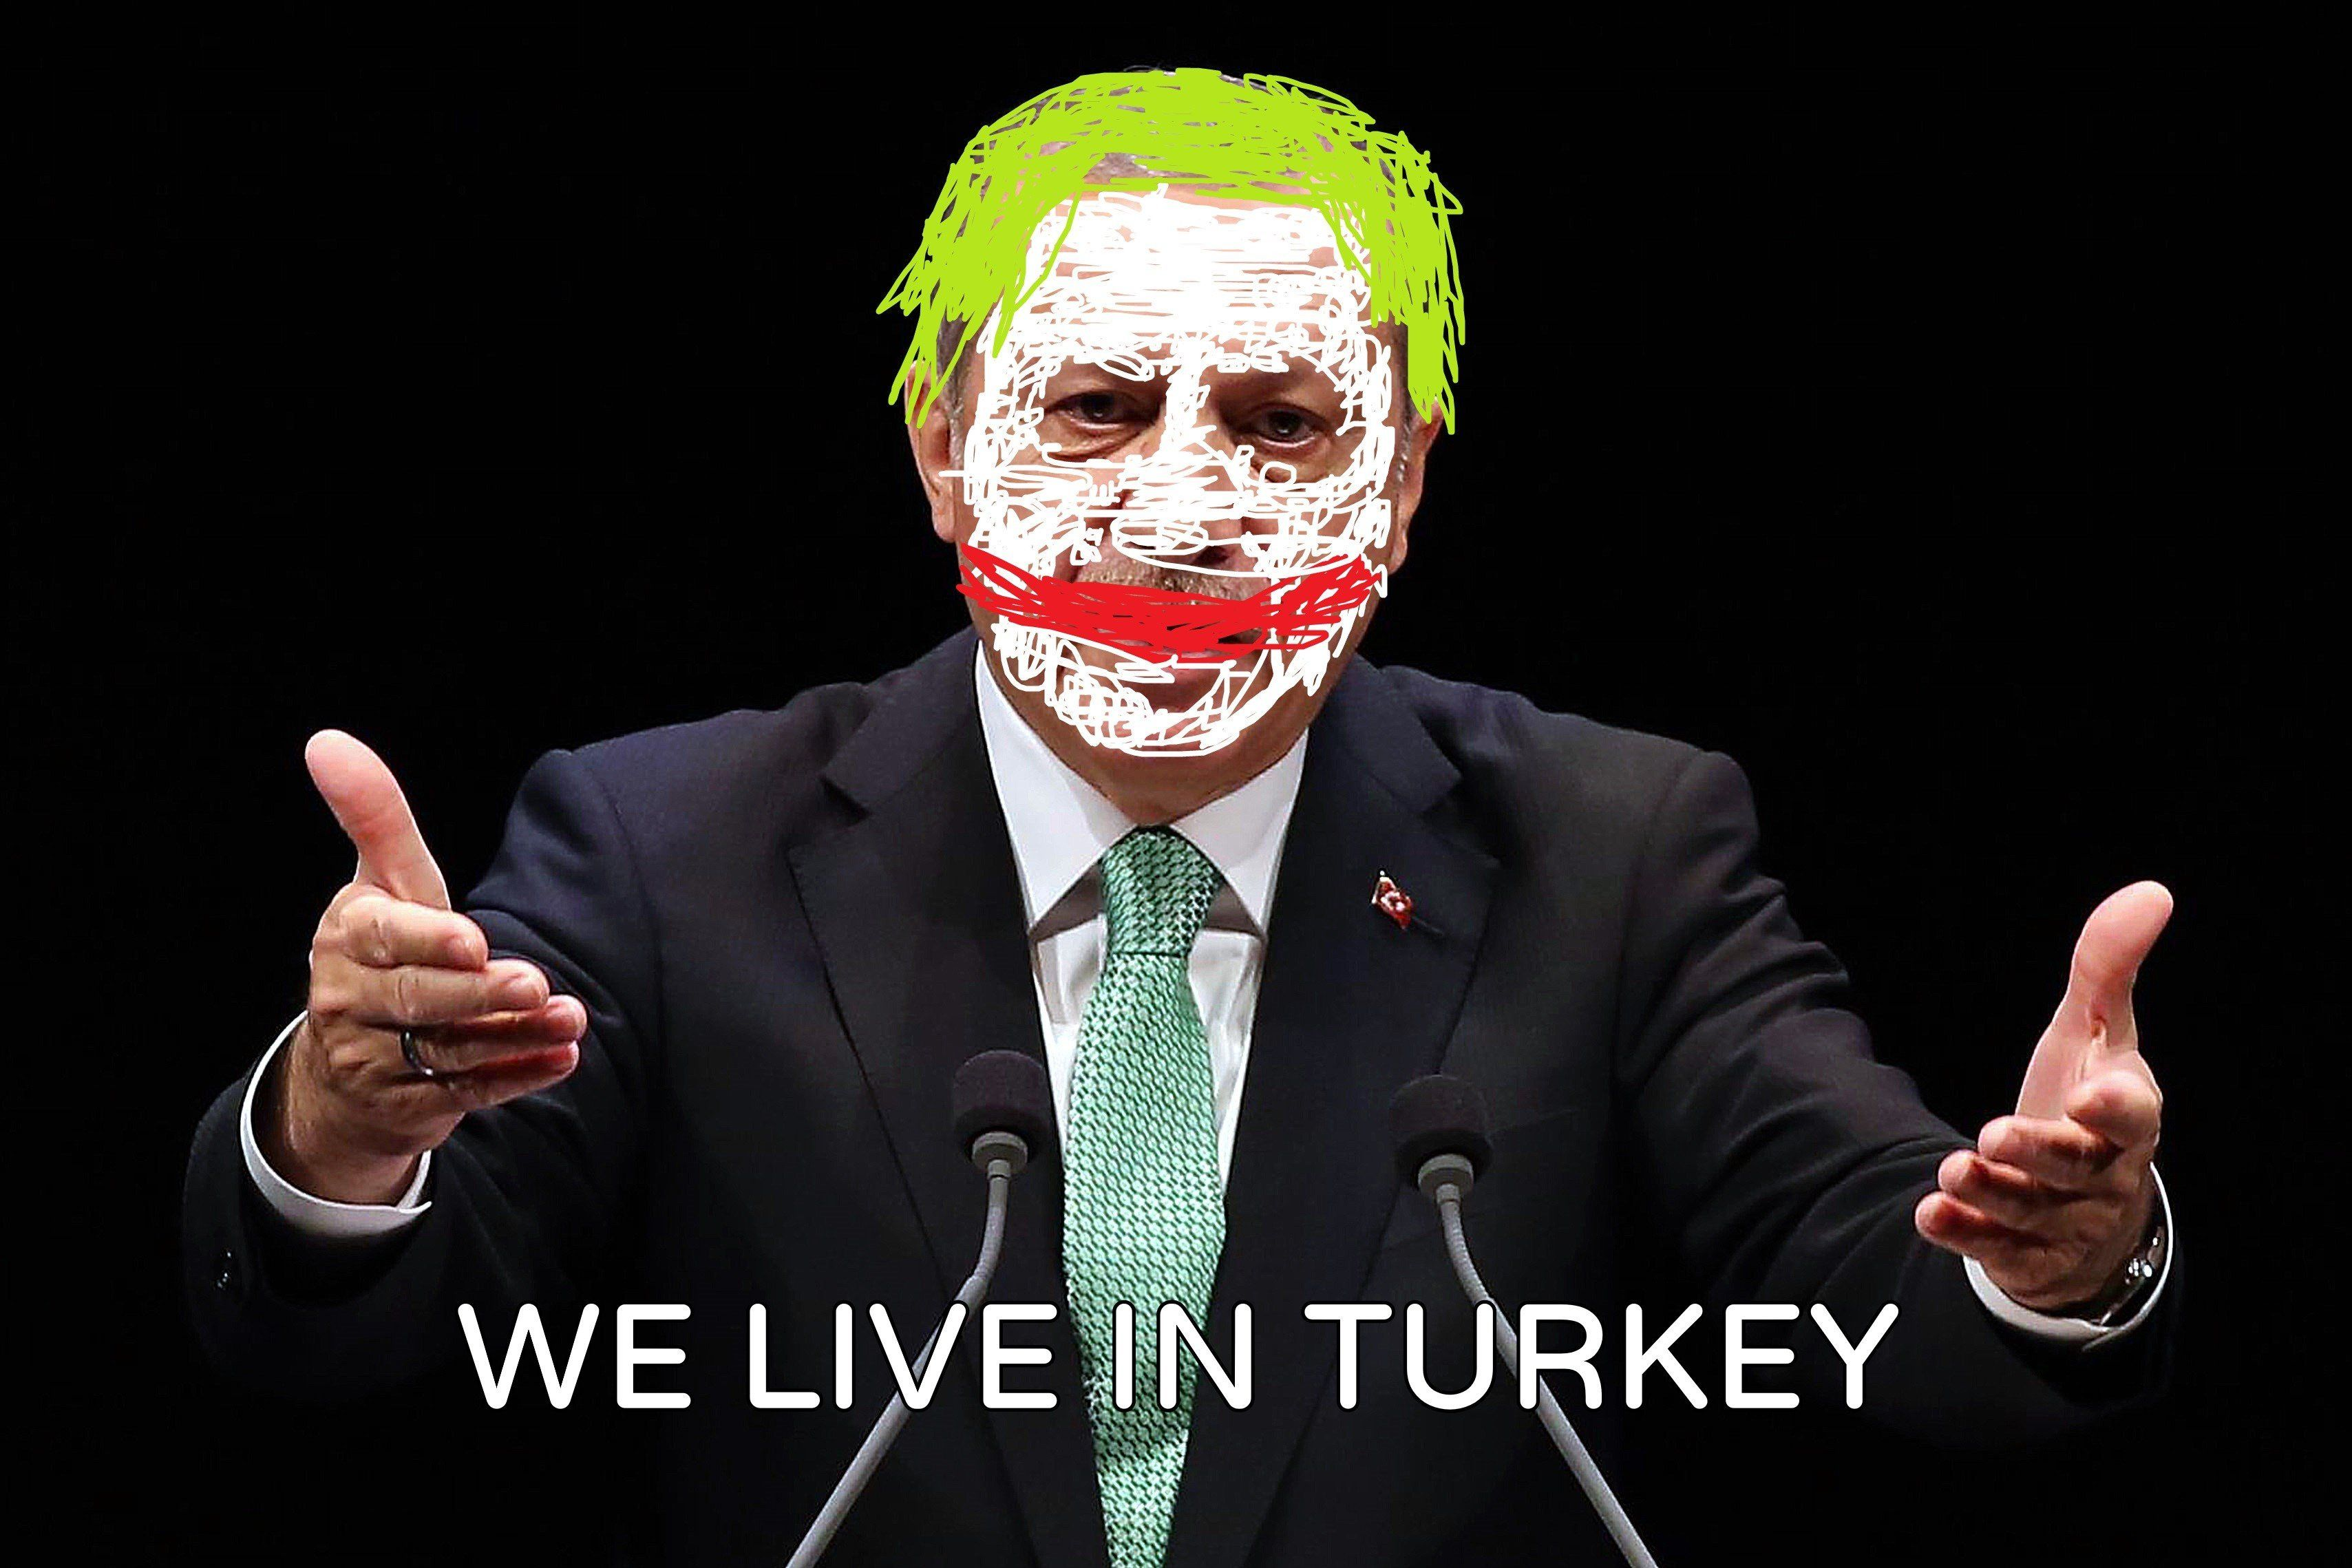 when joker becomes a president